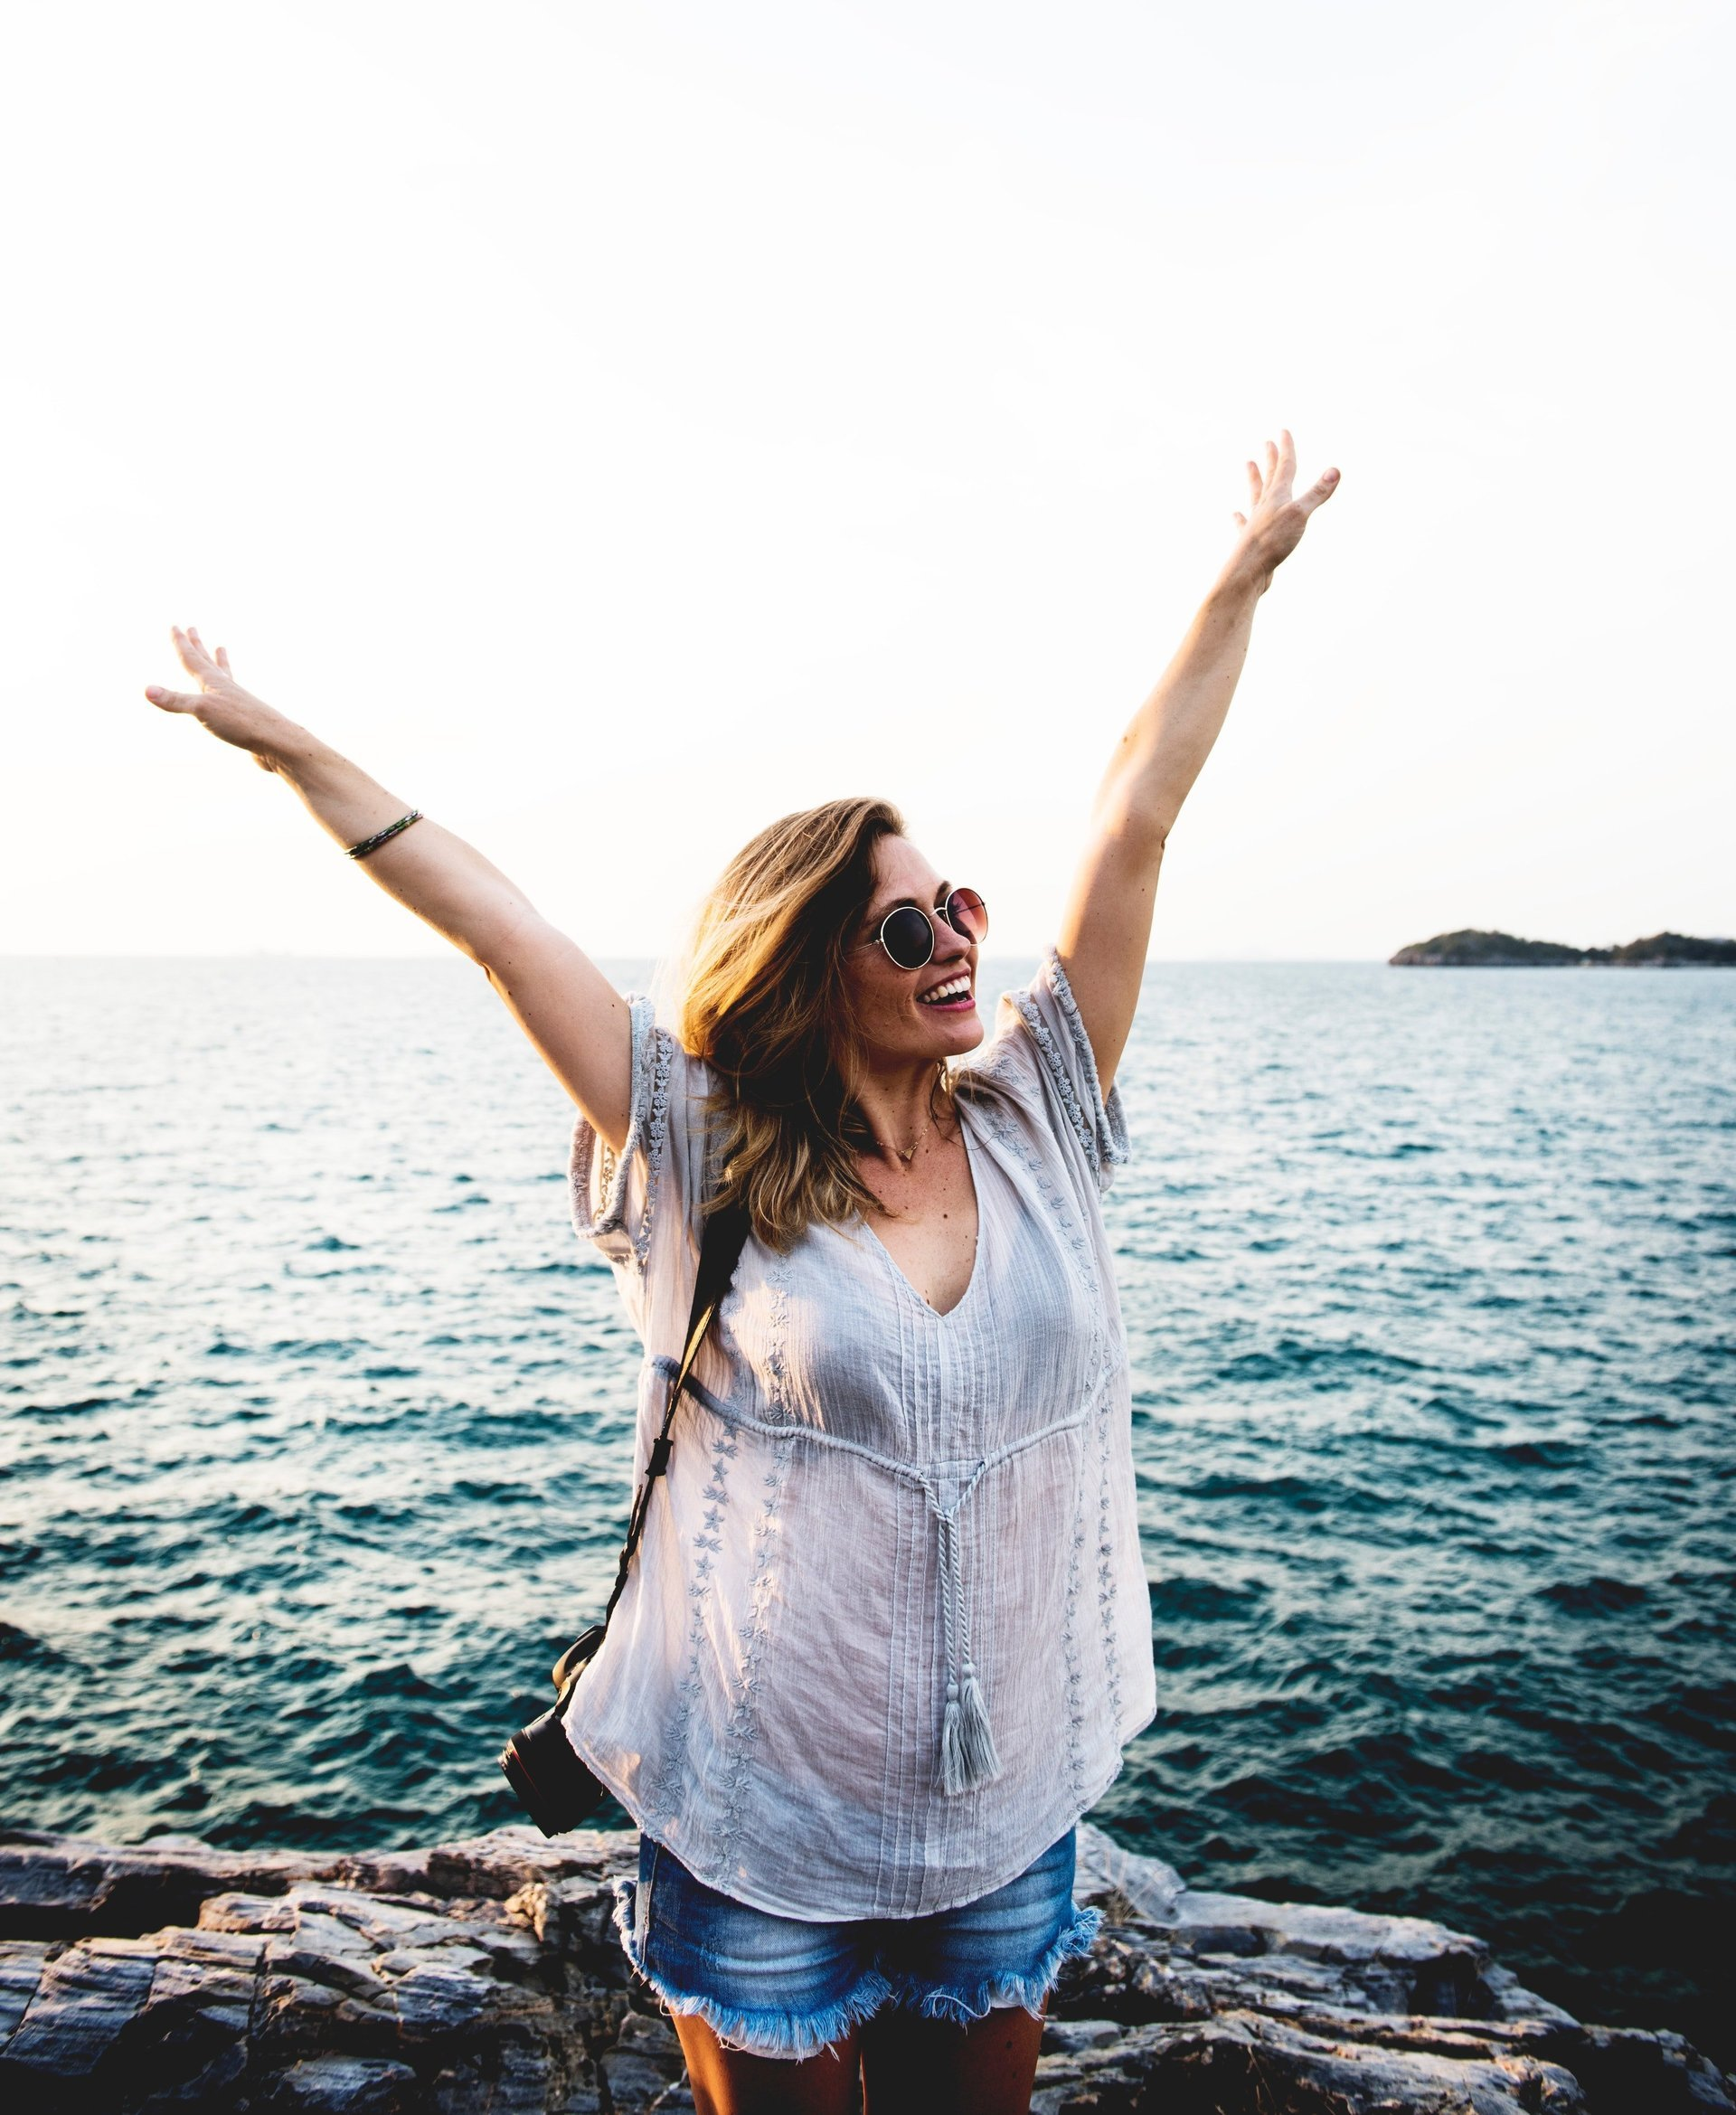 10 Affirmations To Change Your Life